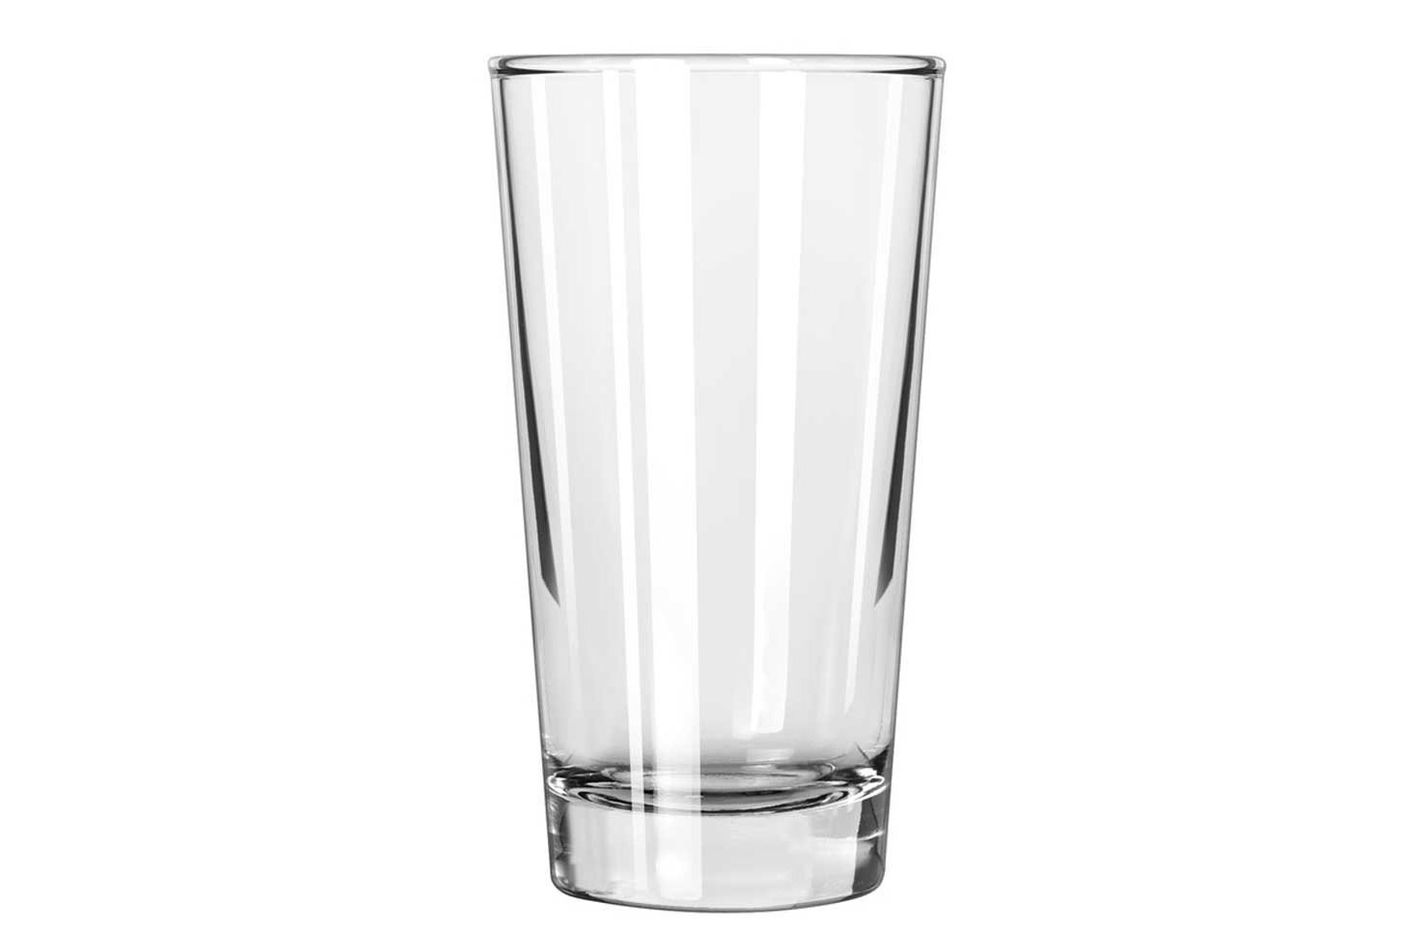 cca8e2cd2a3e 11 Best Drinking Glasses for Everyday Use